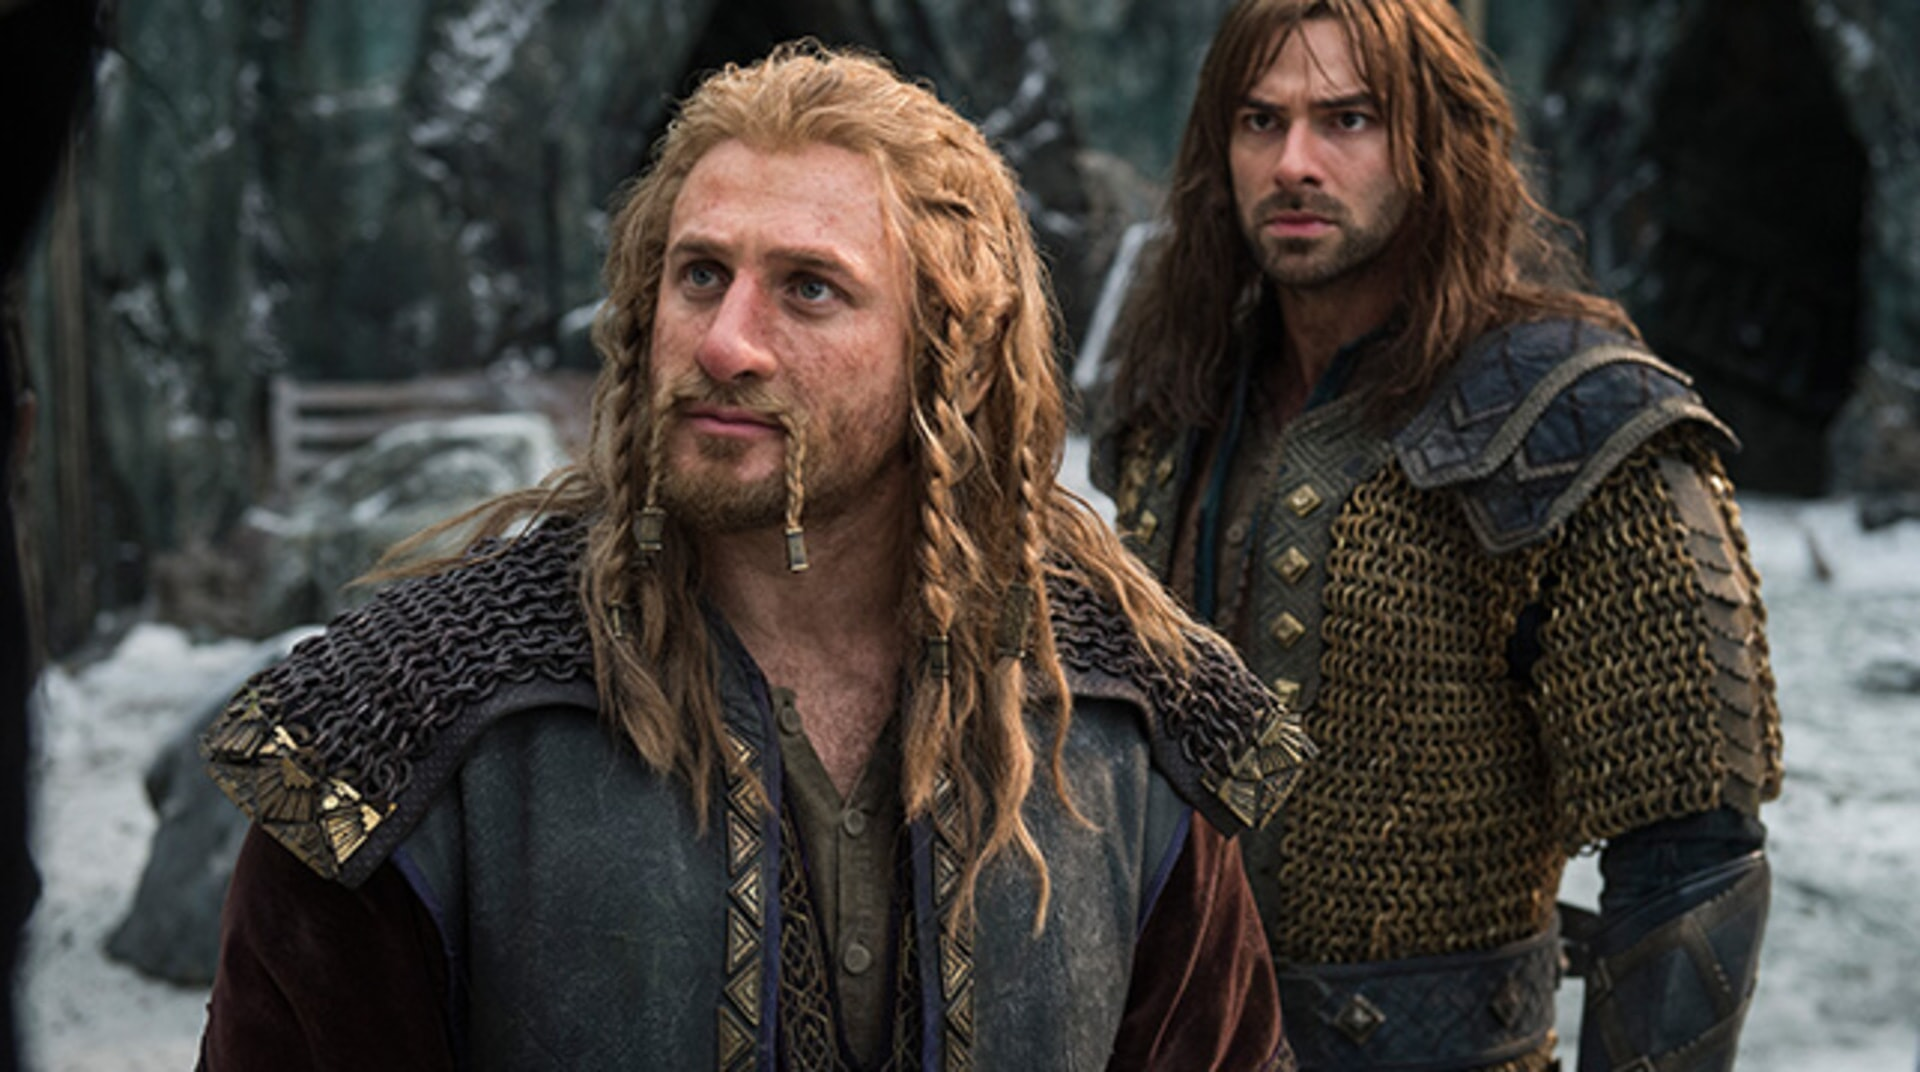 The Hobbit: The Battle of the Five Armies - Image 18